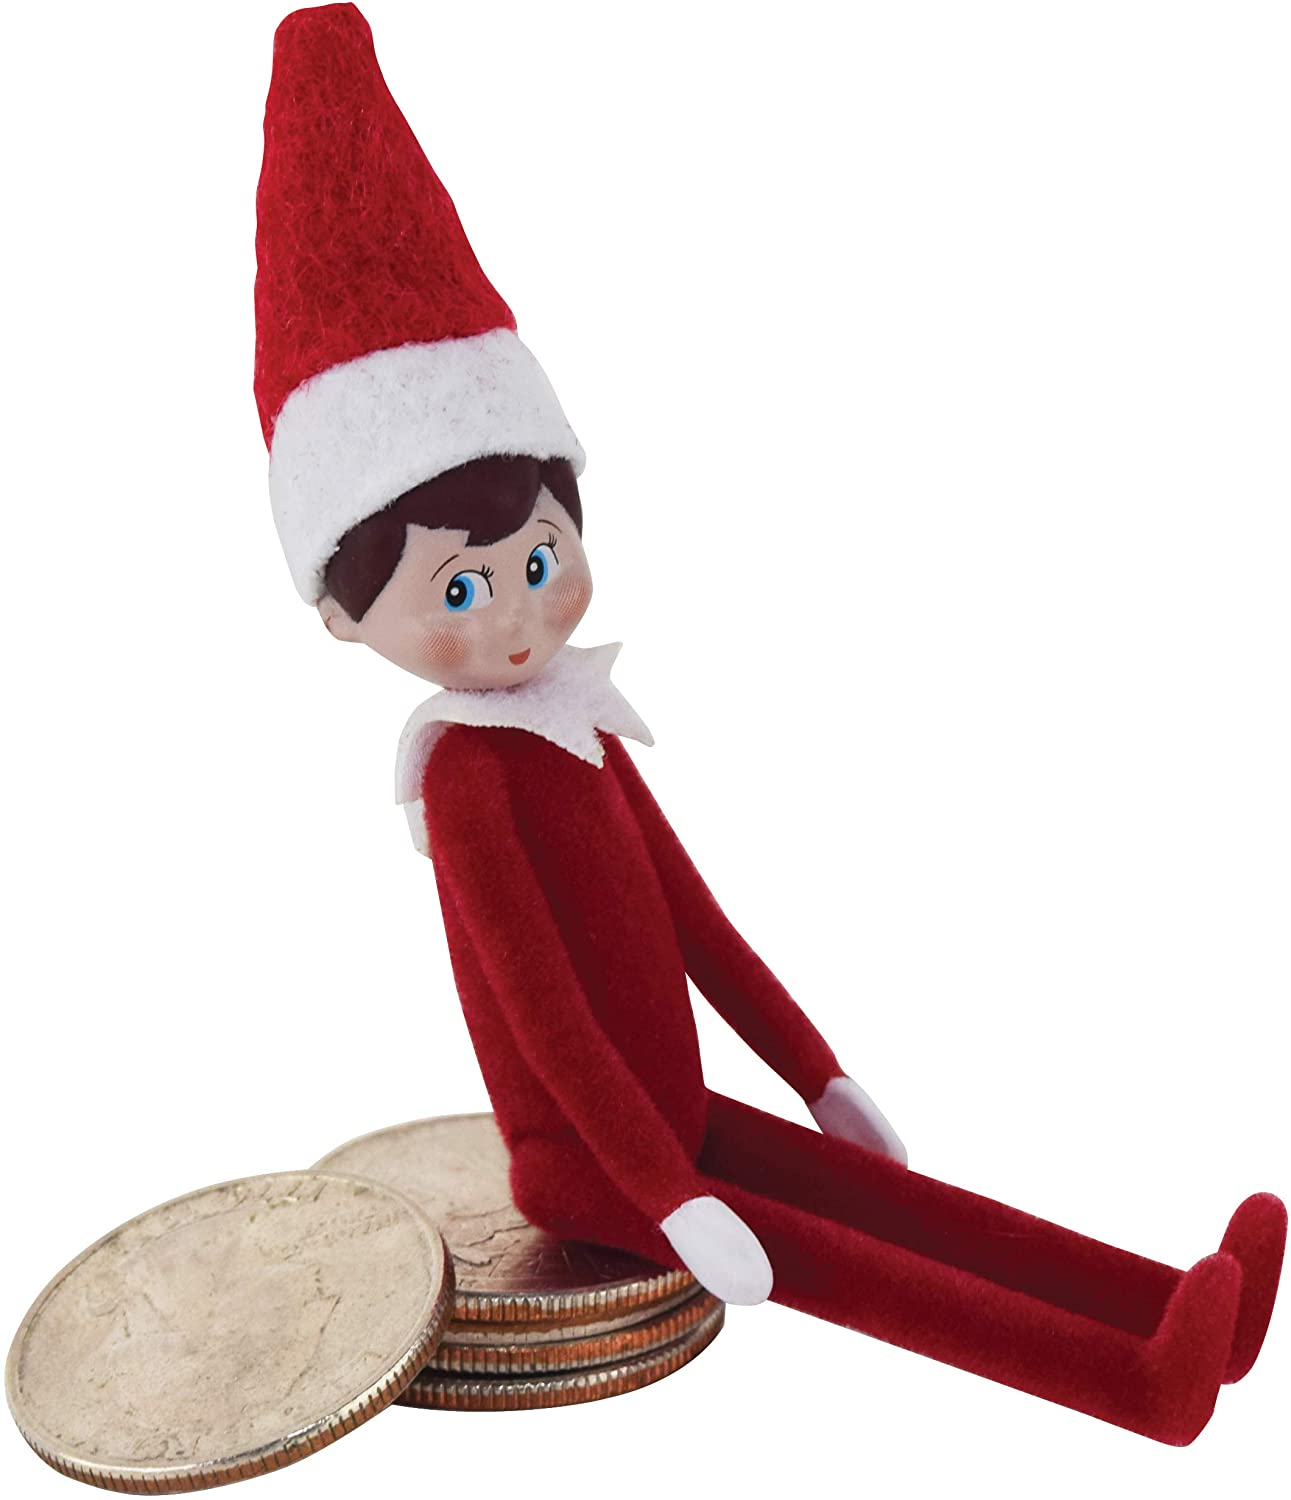 World's Smallest: Elf on the Shelf